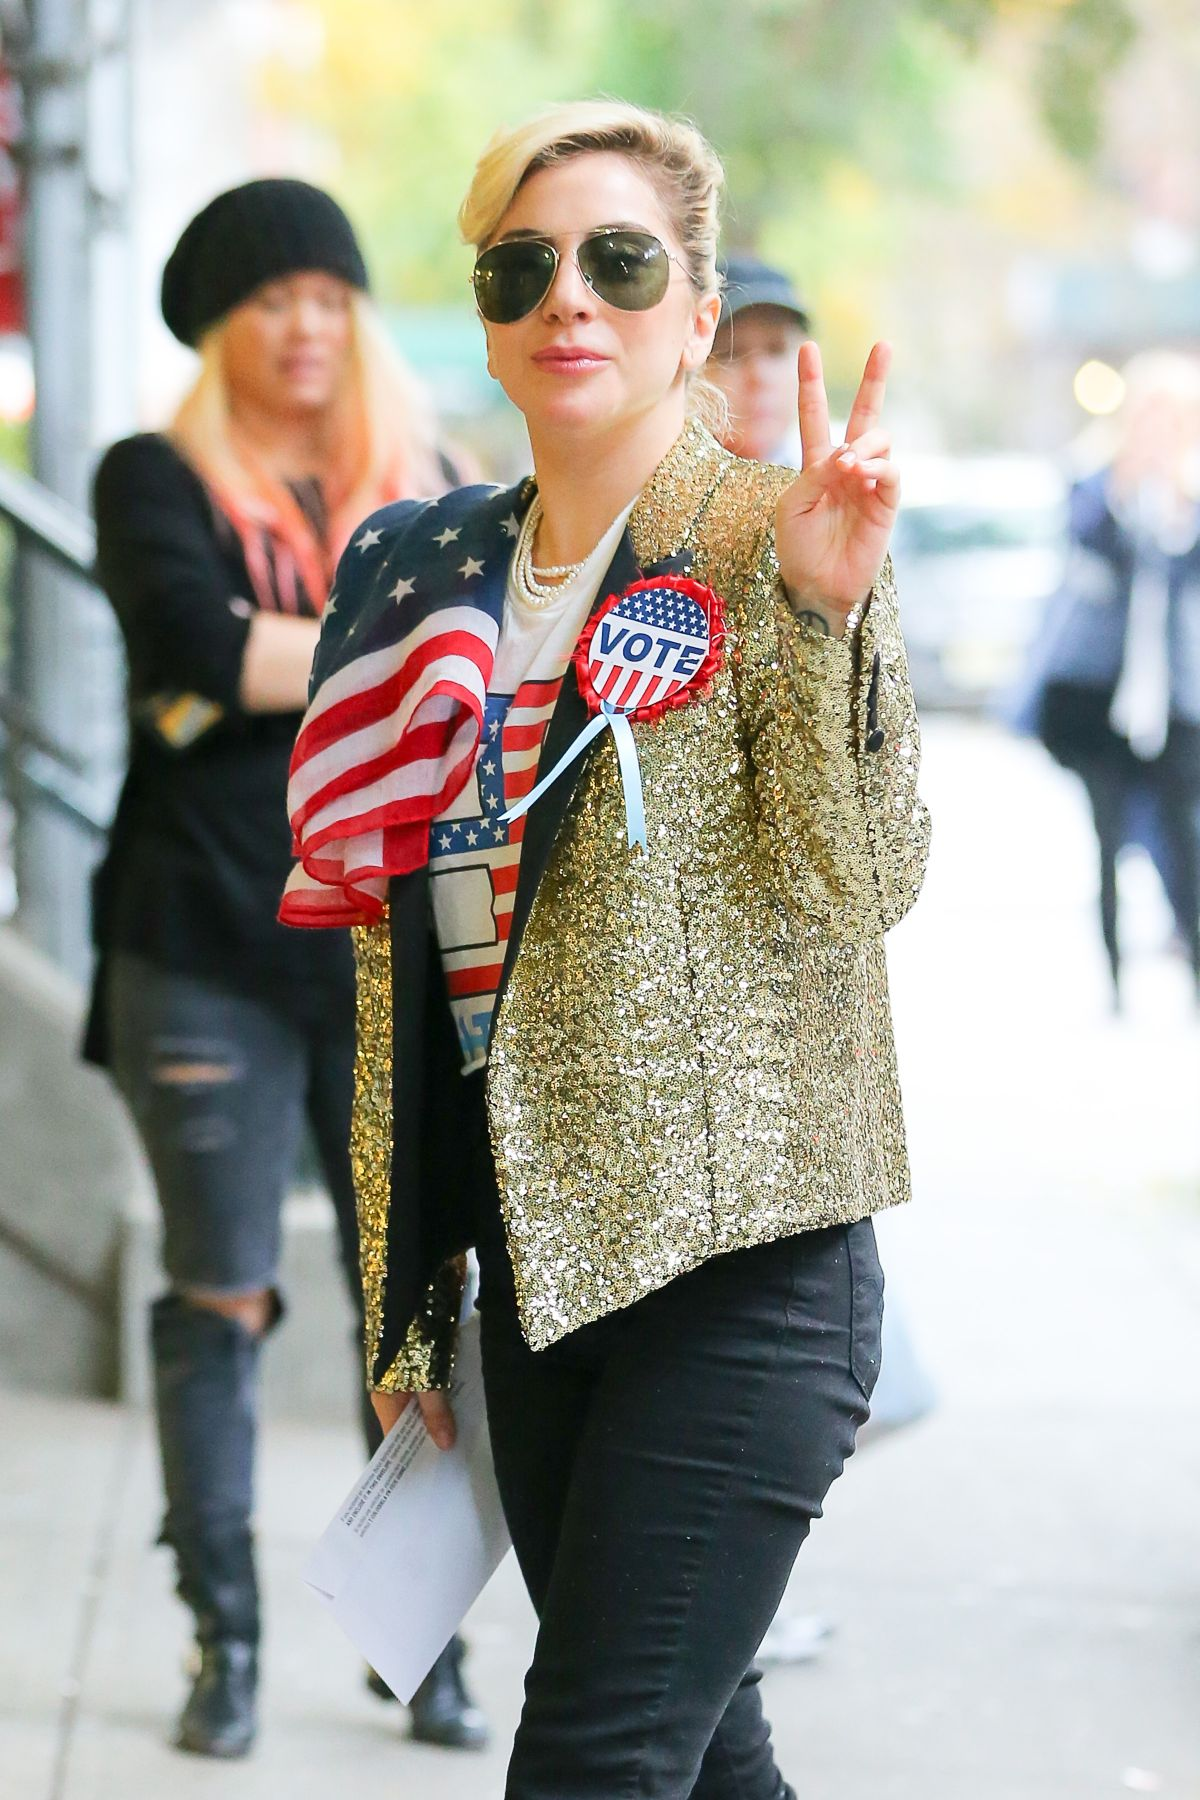 LADY GAGA Arrives at the Polls to Vote in New York 11/08/2016